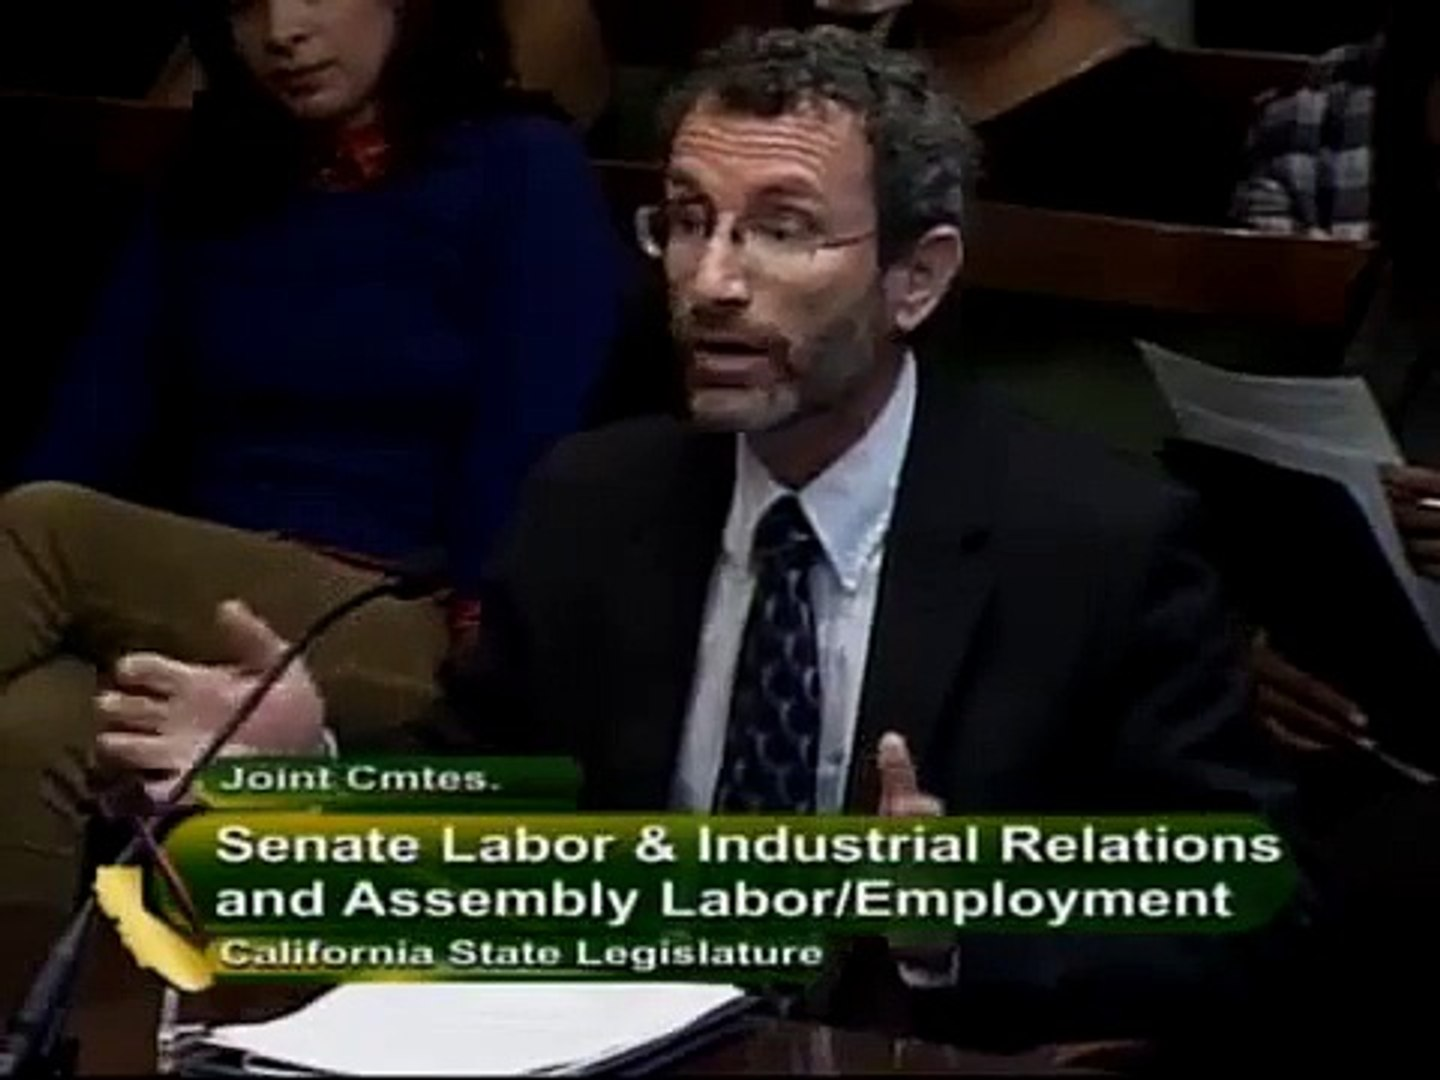 California Legislative Hearing: Wage Levels in Fast Food Industry - Highlights